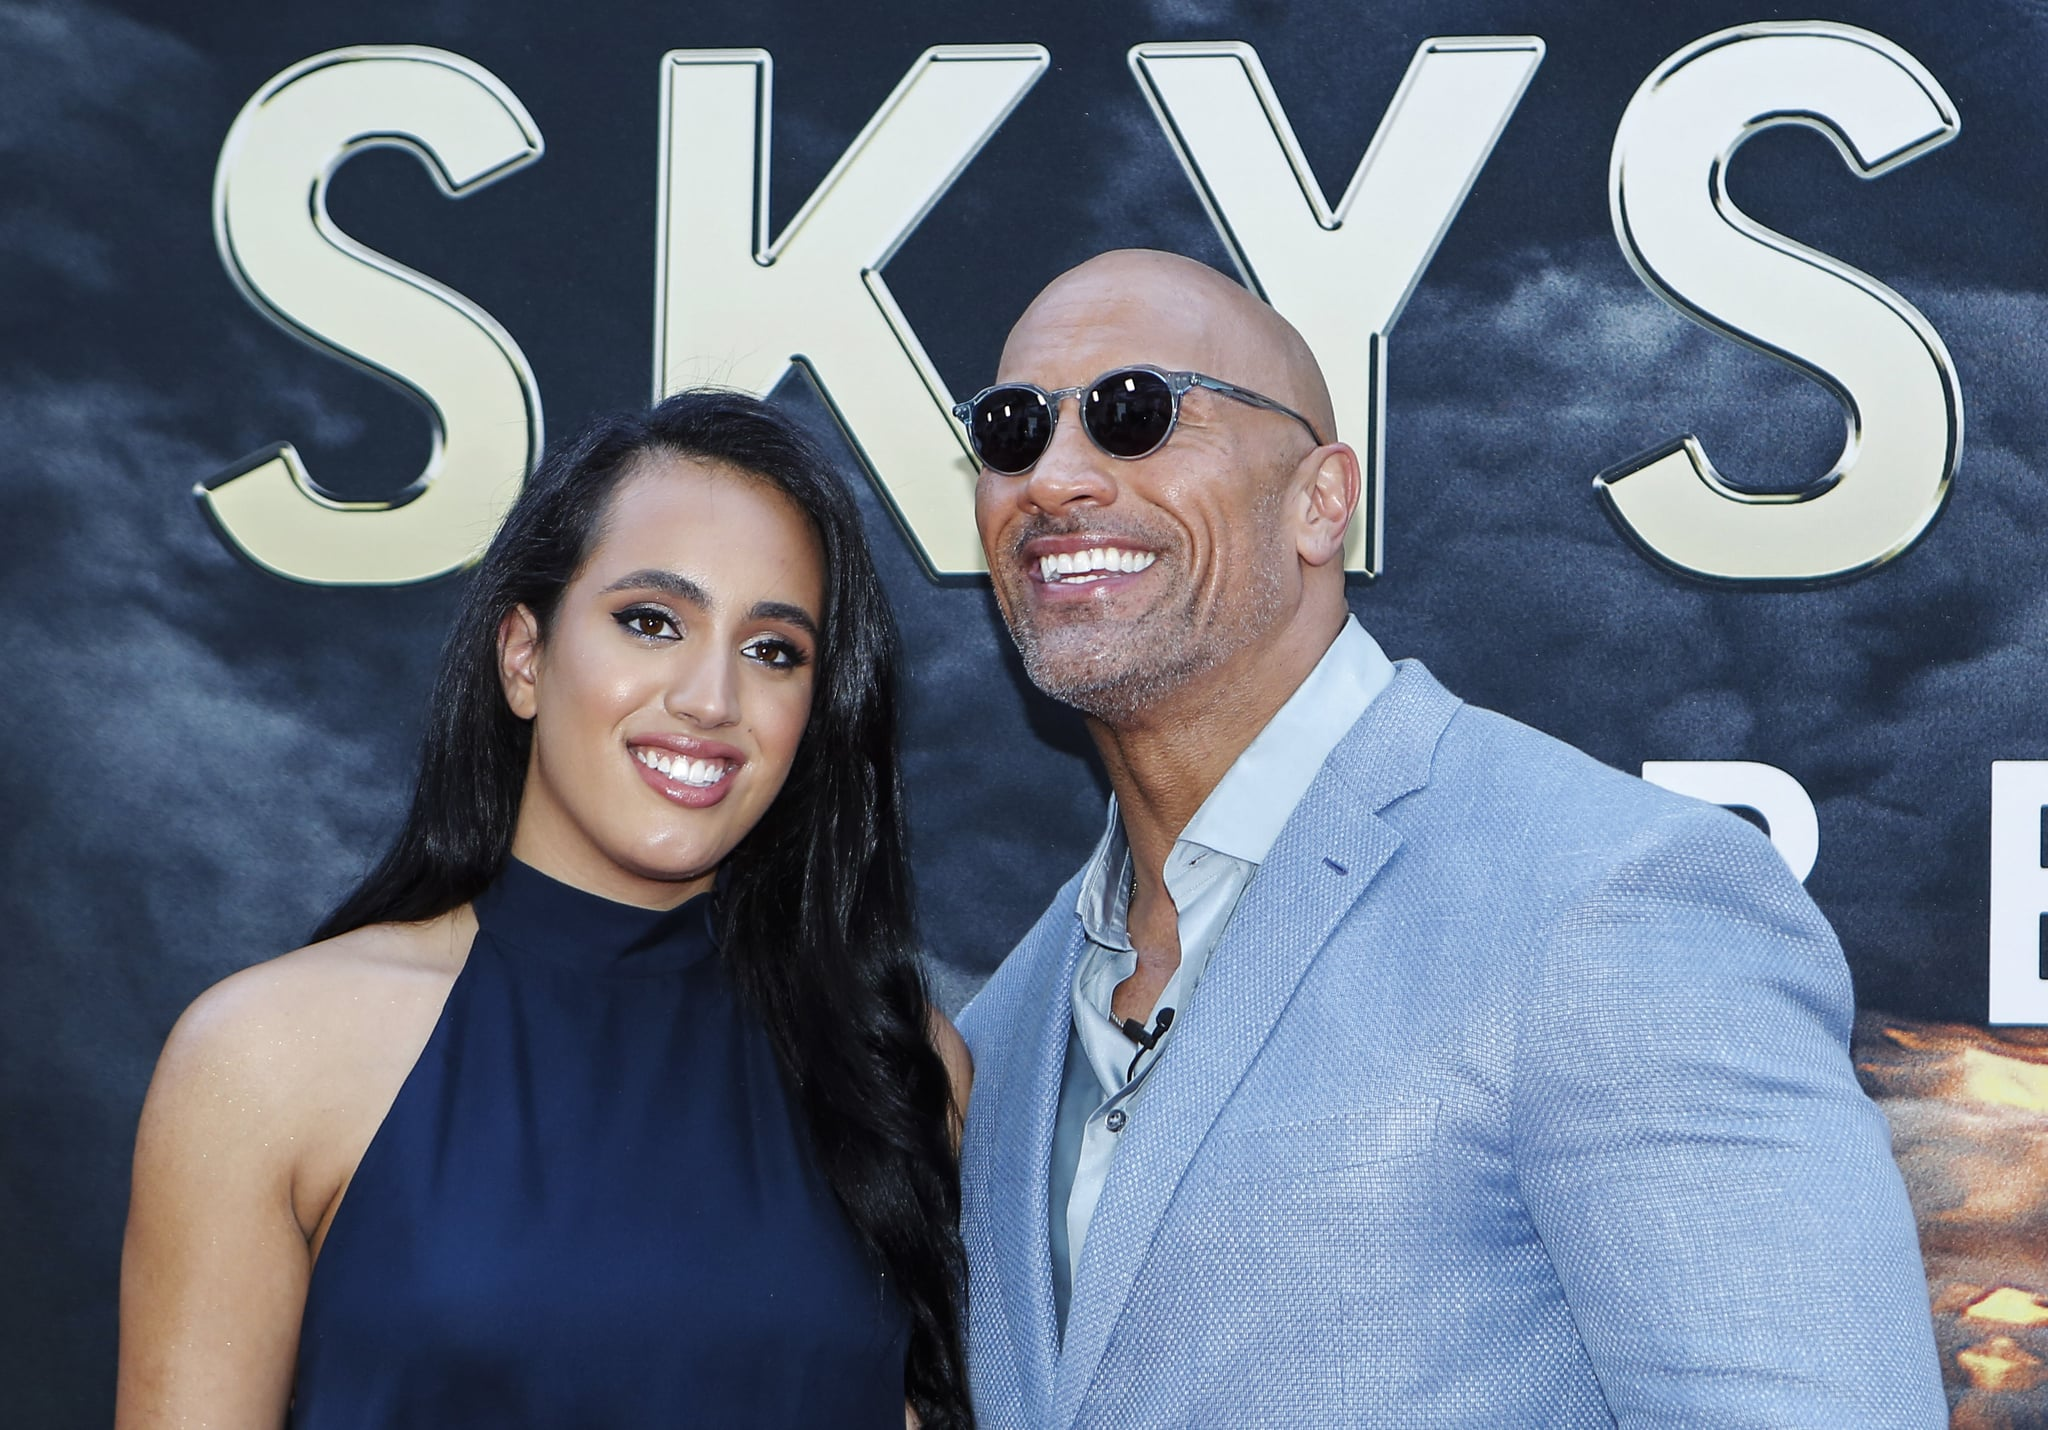 The Rock Gushes Over His 3 Daughter, and Seriously, Can This Be Any Cuter?